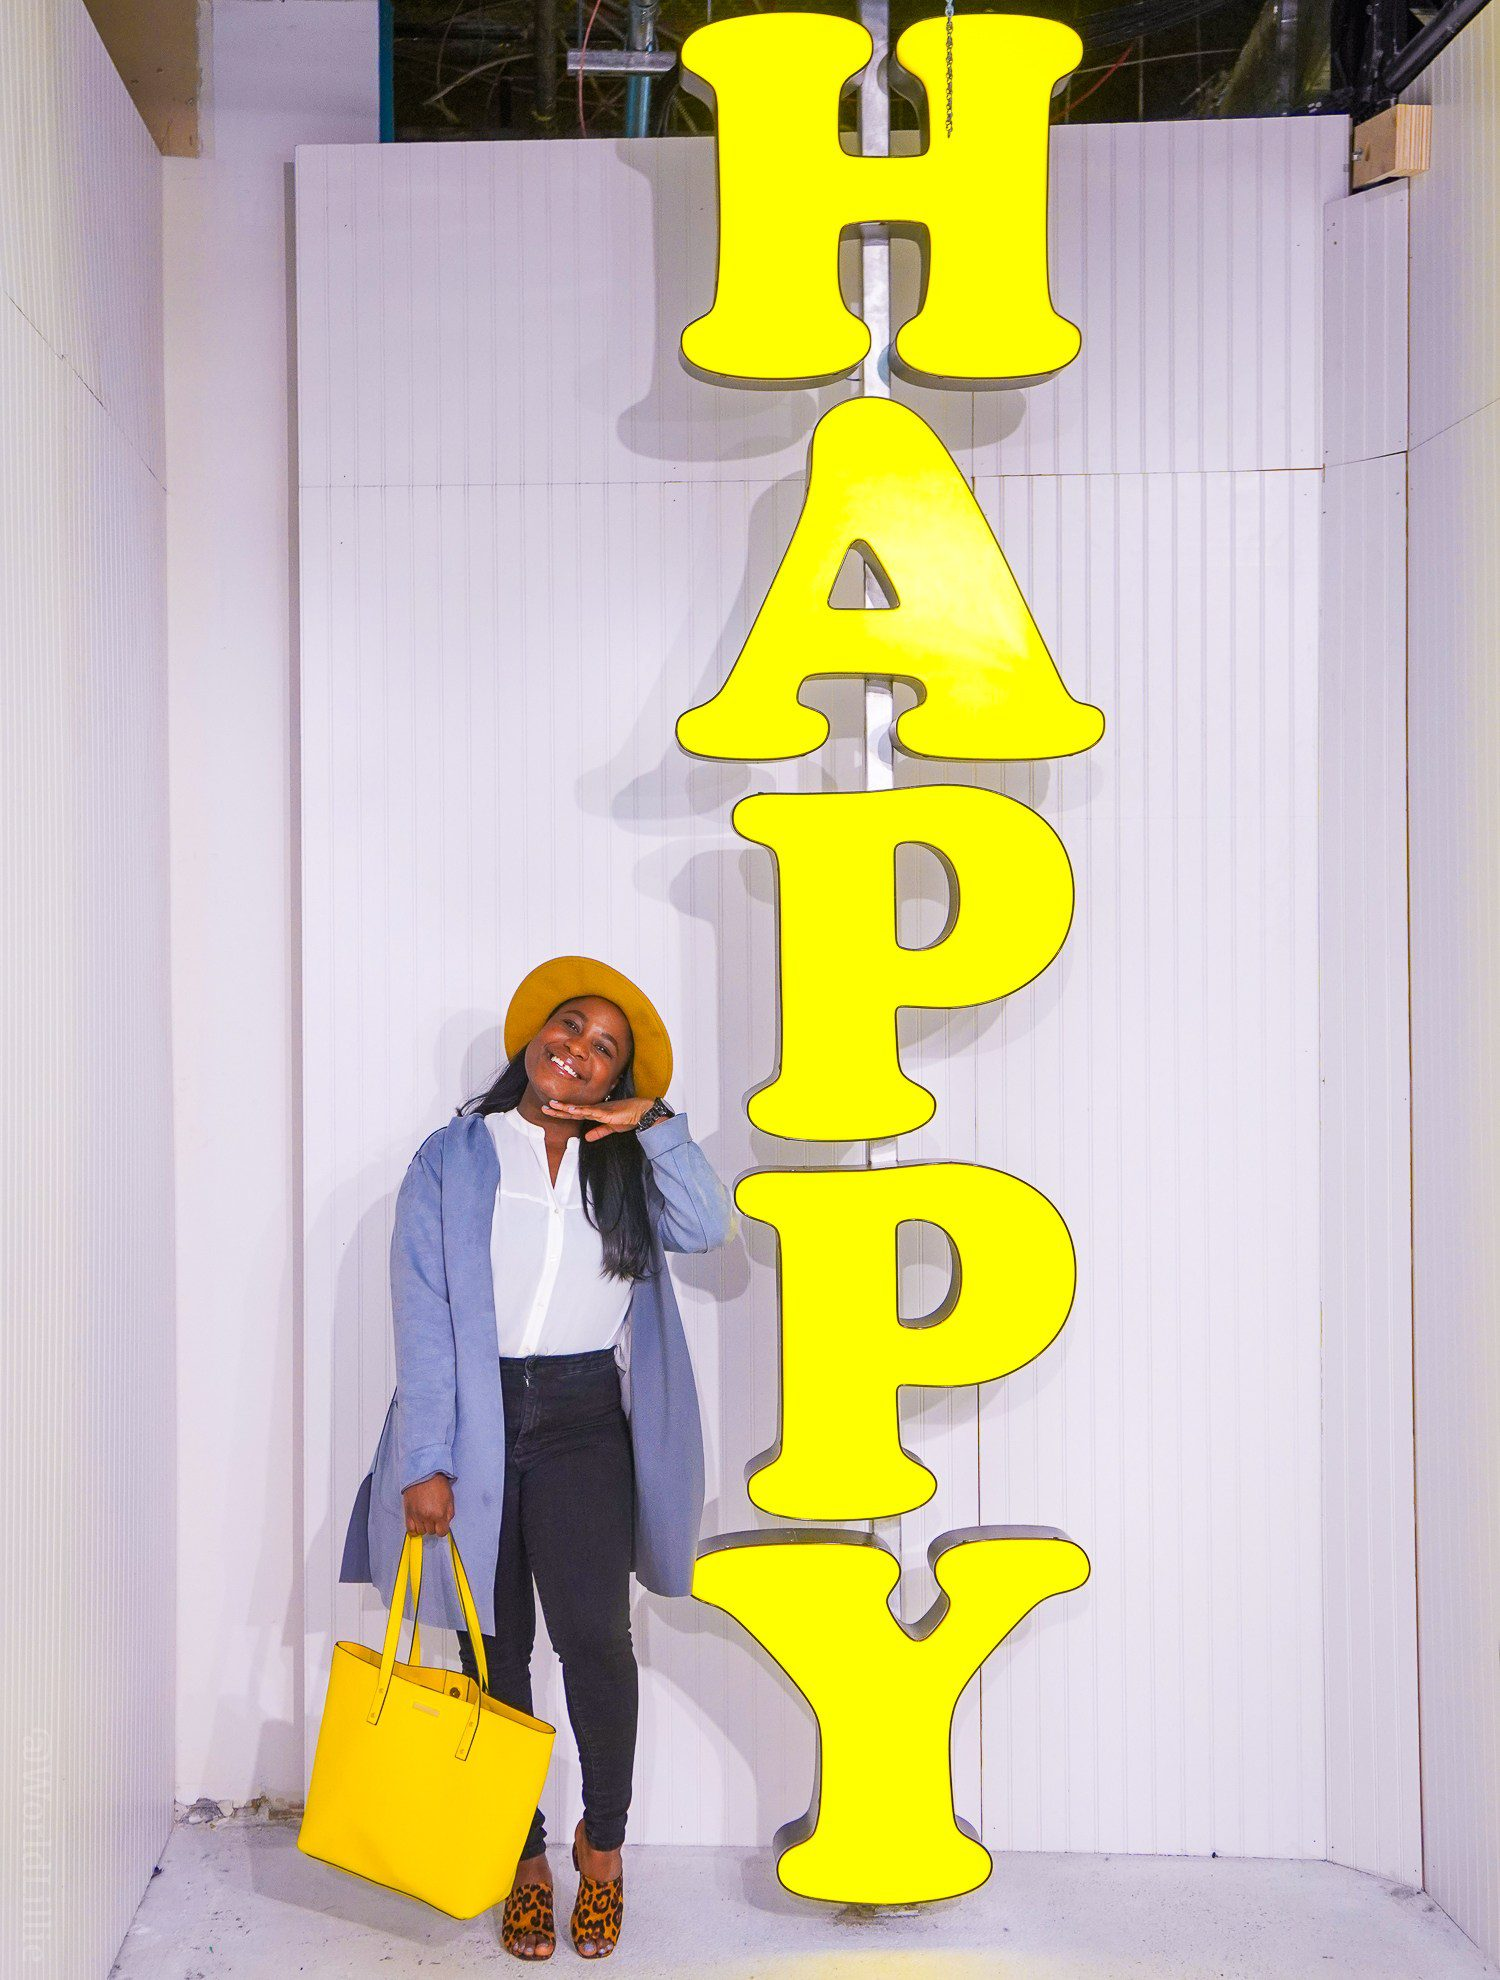 HAPPY sign and influence synonym at Boston Happy Place photo pop-up installation